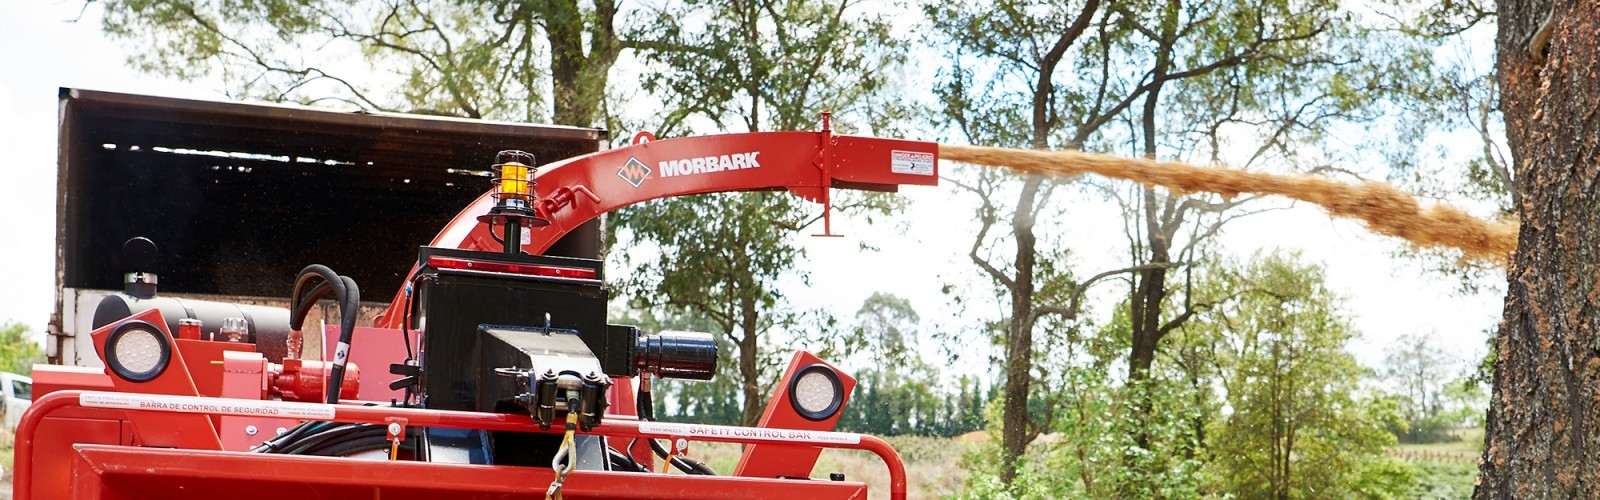 Morbark M18R Wood Chipper